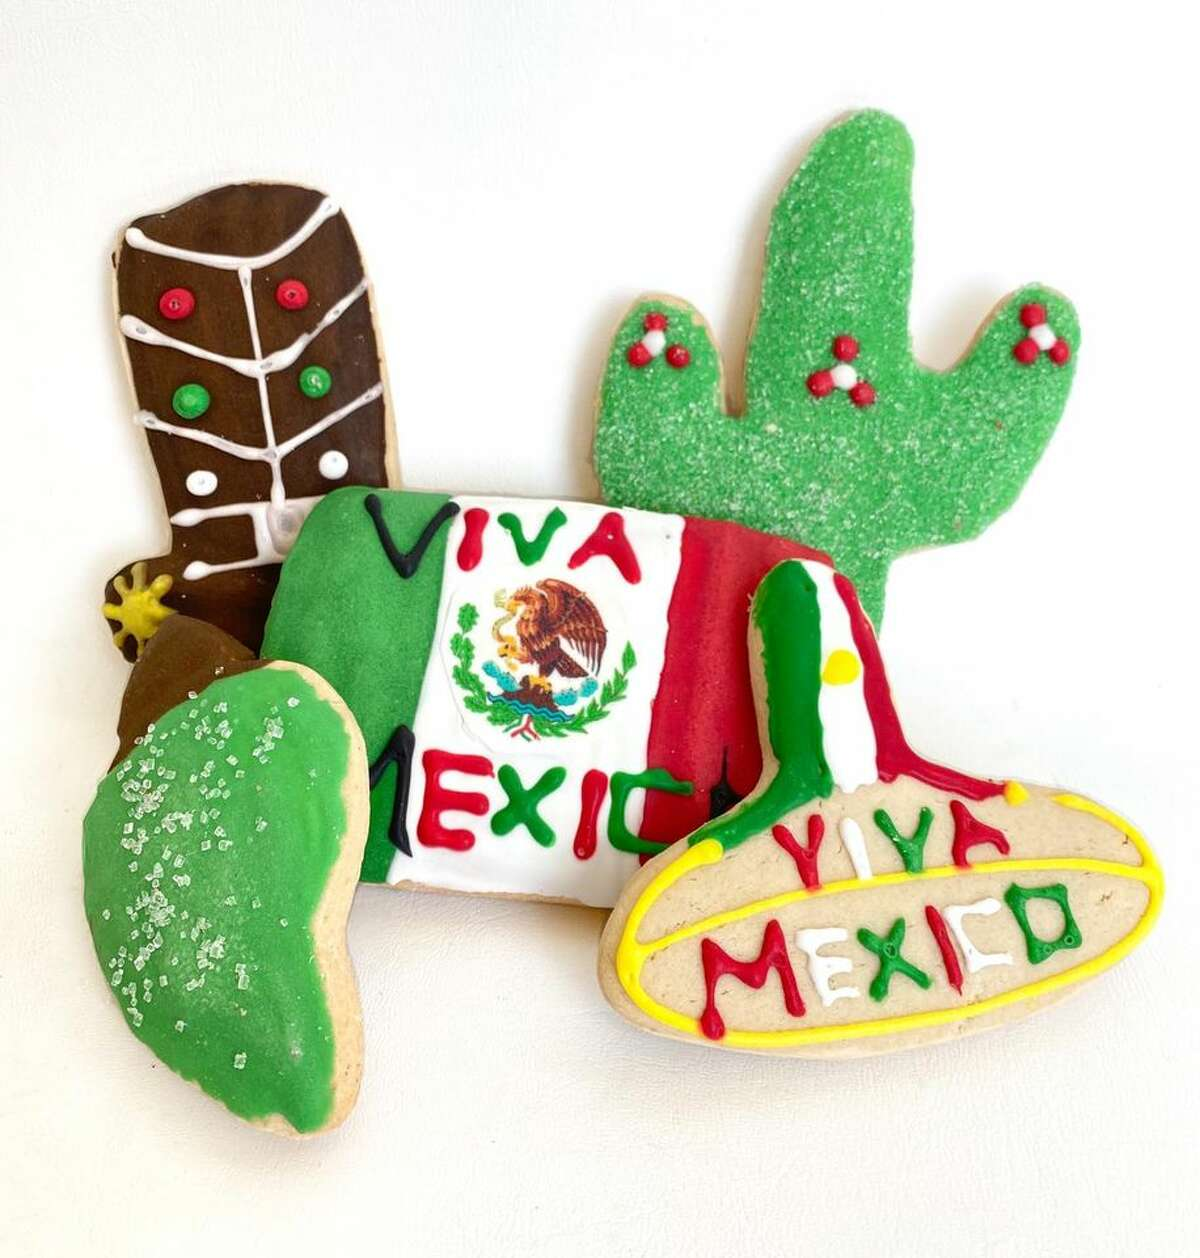 El Bolillo Bakery has you covered this Mexican Independence Day with beautifully decorated sweet treats to honor the occasion.